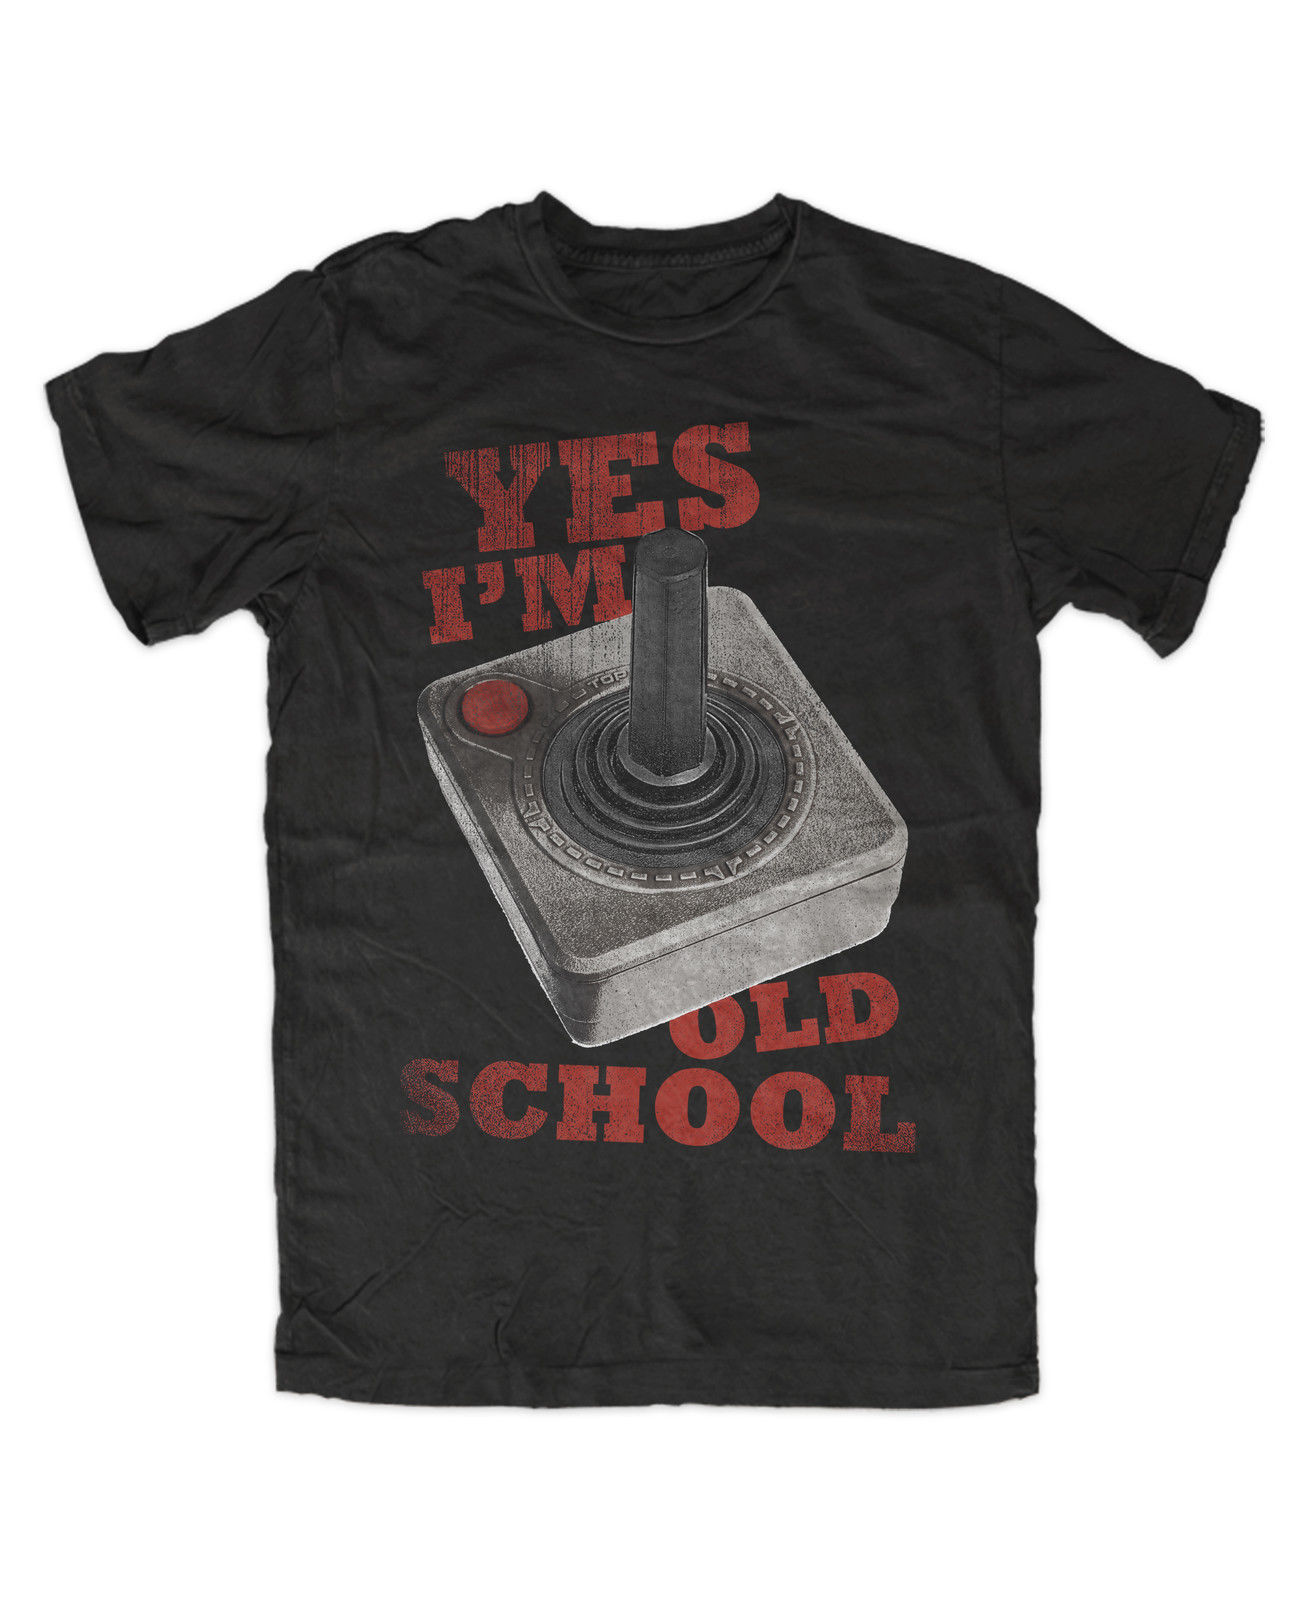 Old School Joystick Premium T-Shirt Game,Gamer,Nerd,Kult,Fun,Video,Highscore Short Sleeve Casual O-Neck Cotton Gray Style ...